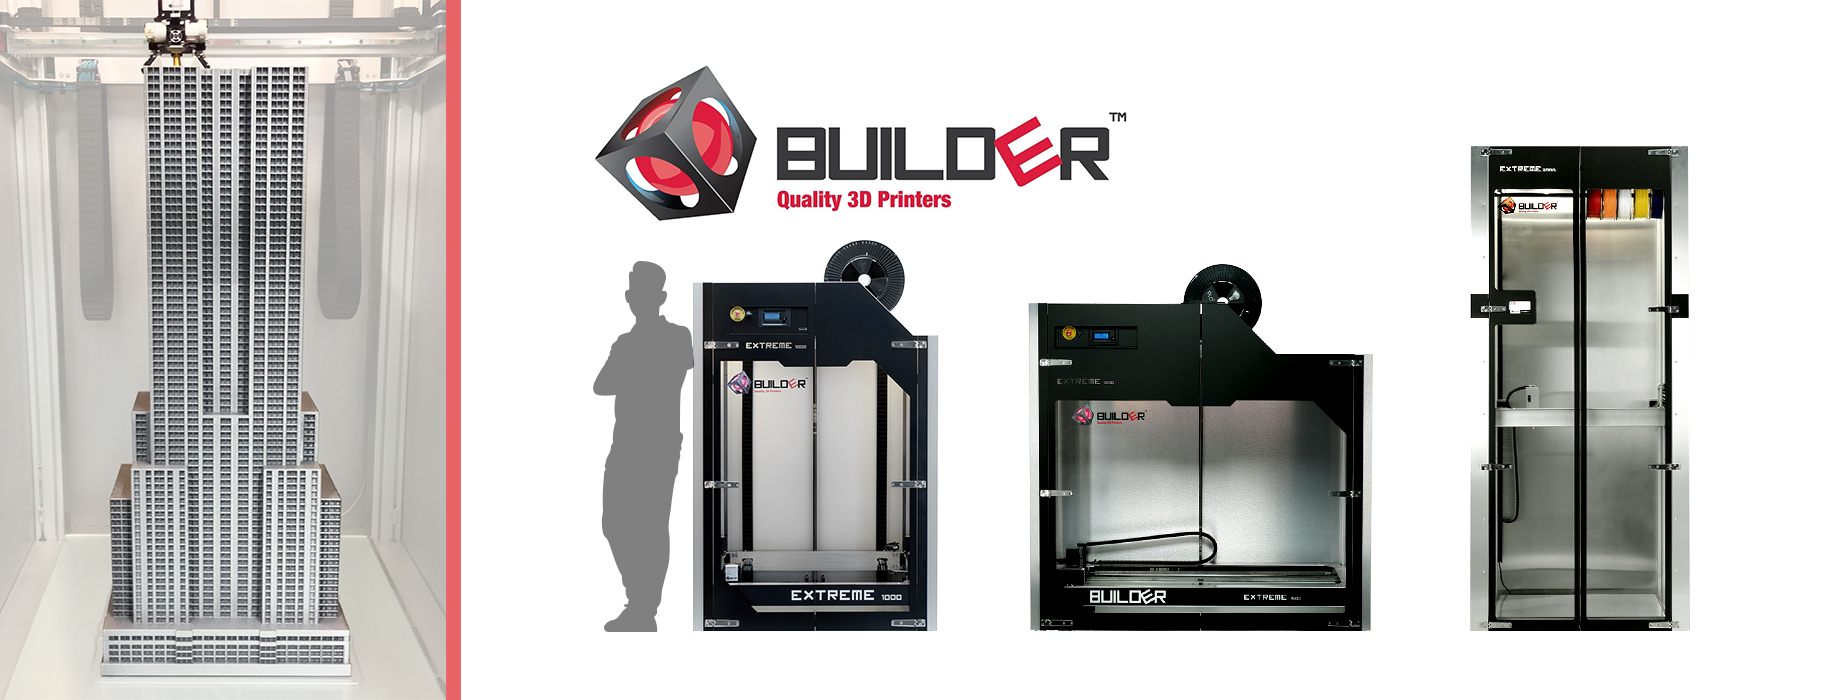 Meet the Builder Extreme range. The Builder Extreme is an affordable large scale FFF 3D printer which is available in three different sizes. Despite its big print volume, there is no loss in print quality.